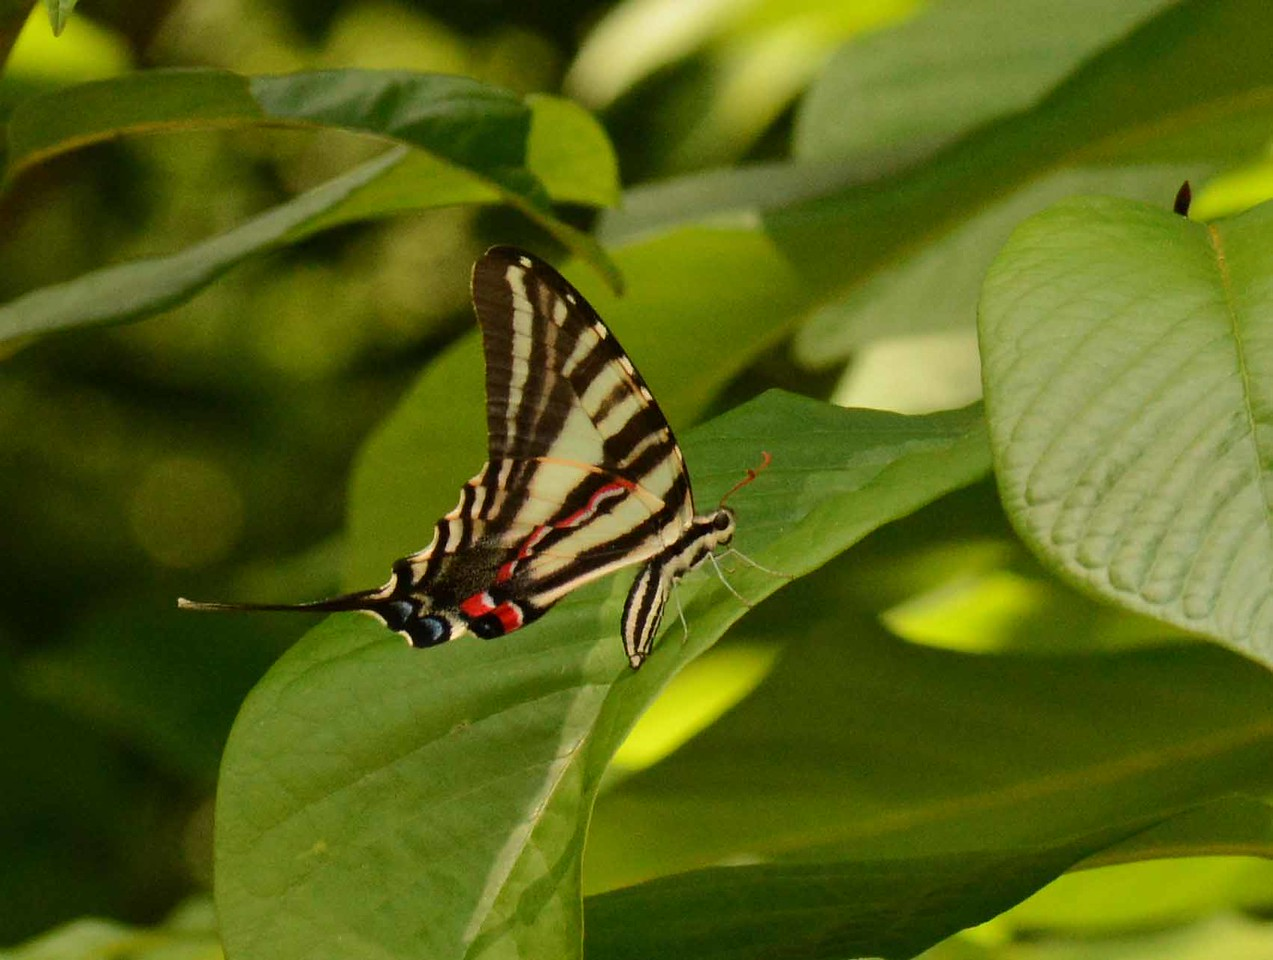 a Zebra Swallowtail -- Eurytides marcellus, lays an egg on a Pawpaw leaf<br /> <br /> Plant and animal partnerships are compacts sealed by sun and moon long before any human agreement ever stood the test of notion. Yet no treaty can exist on any tract without tree or treat as fundamental concepts. Sometimes entomology aids etymology as insects whisper about the understory.